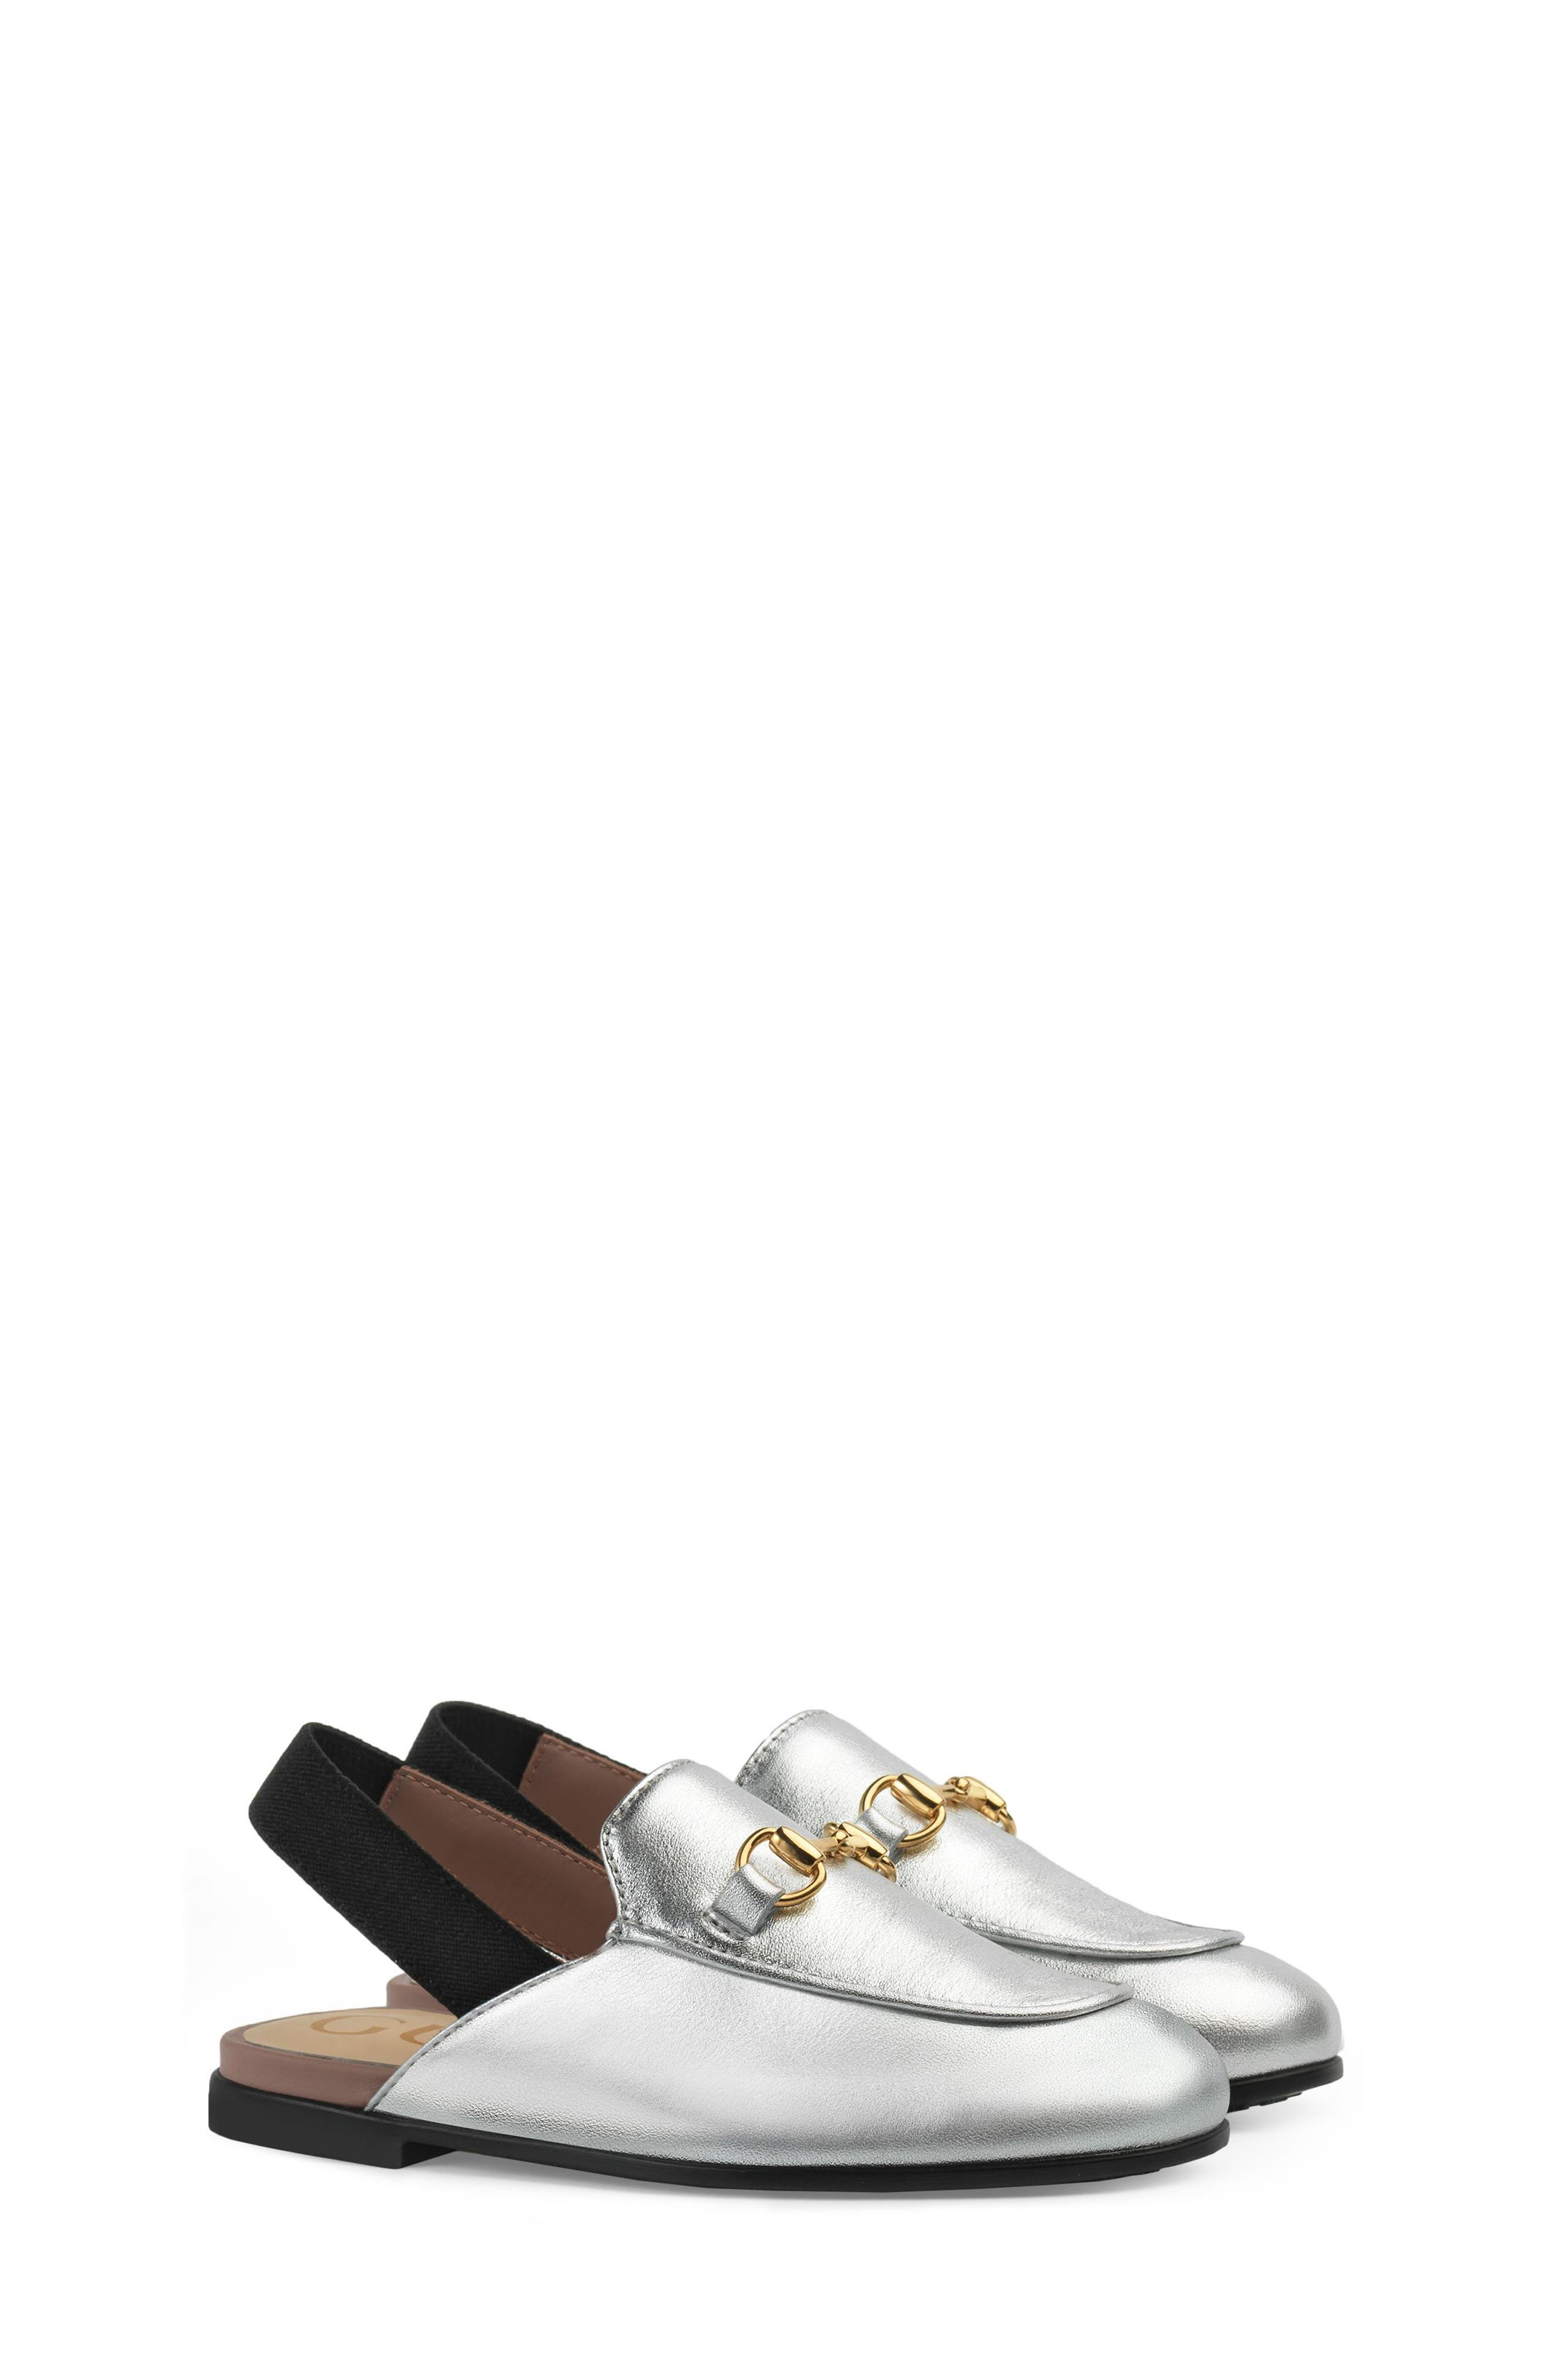 Main Image - Gucci Princetown Loafer Mule (Toddler & Little Kid)